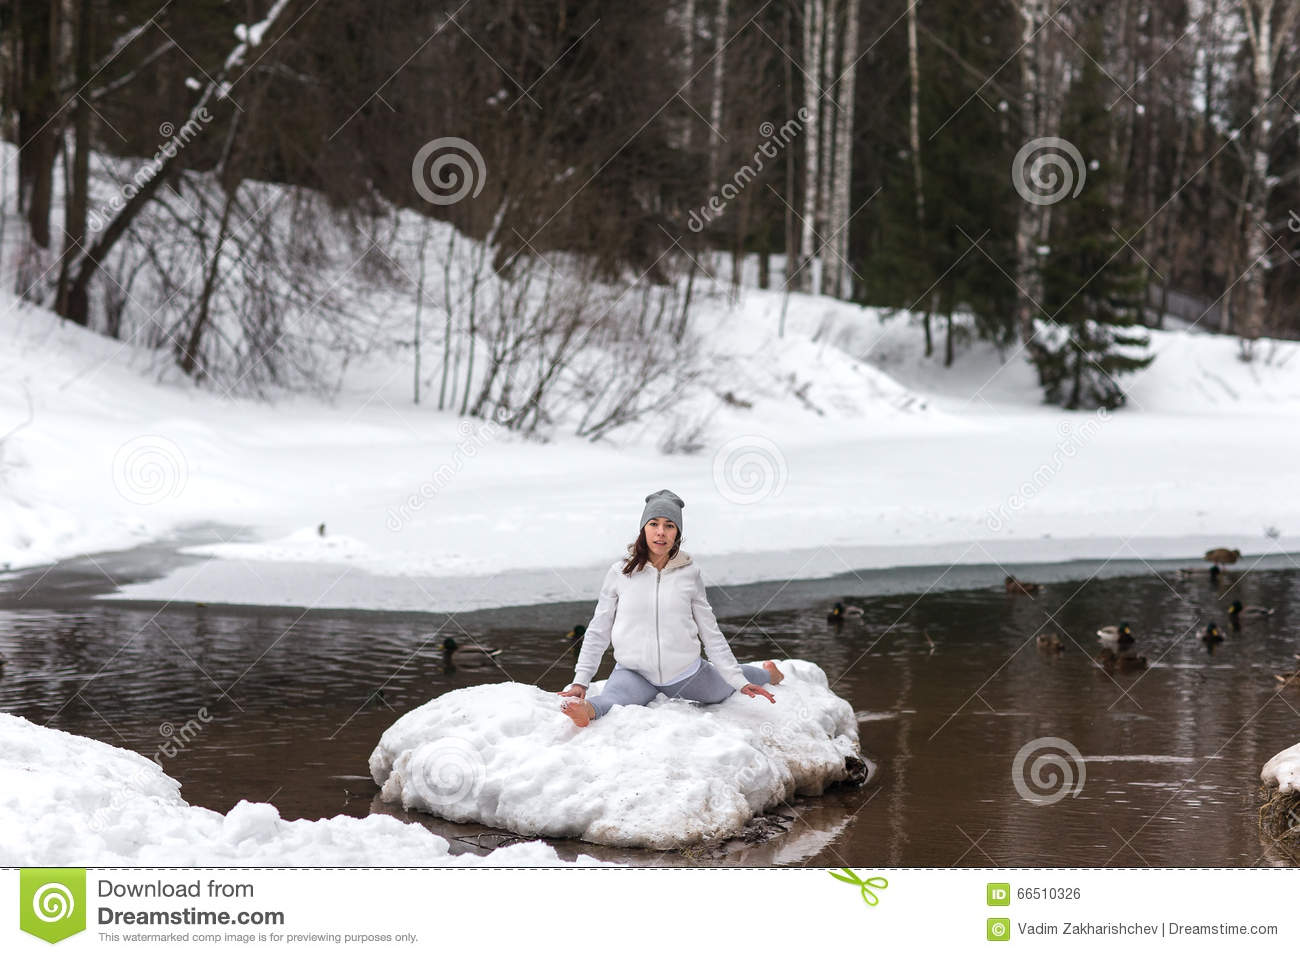 https://thumbs.dreamstime.com/z/winter-yoga-session-beautiful-place-young-athletic-woman-doing-woods-girl-engaged-fitness-park-barefoot-snow-66510326.jpg